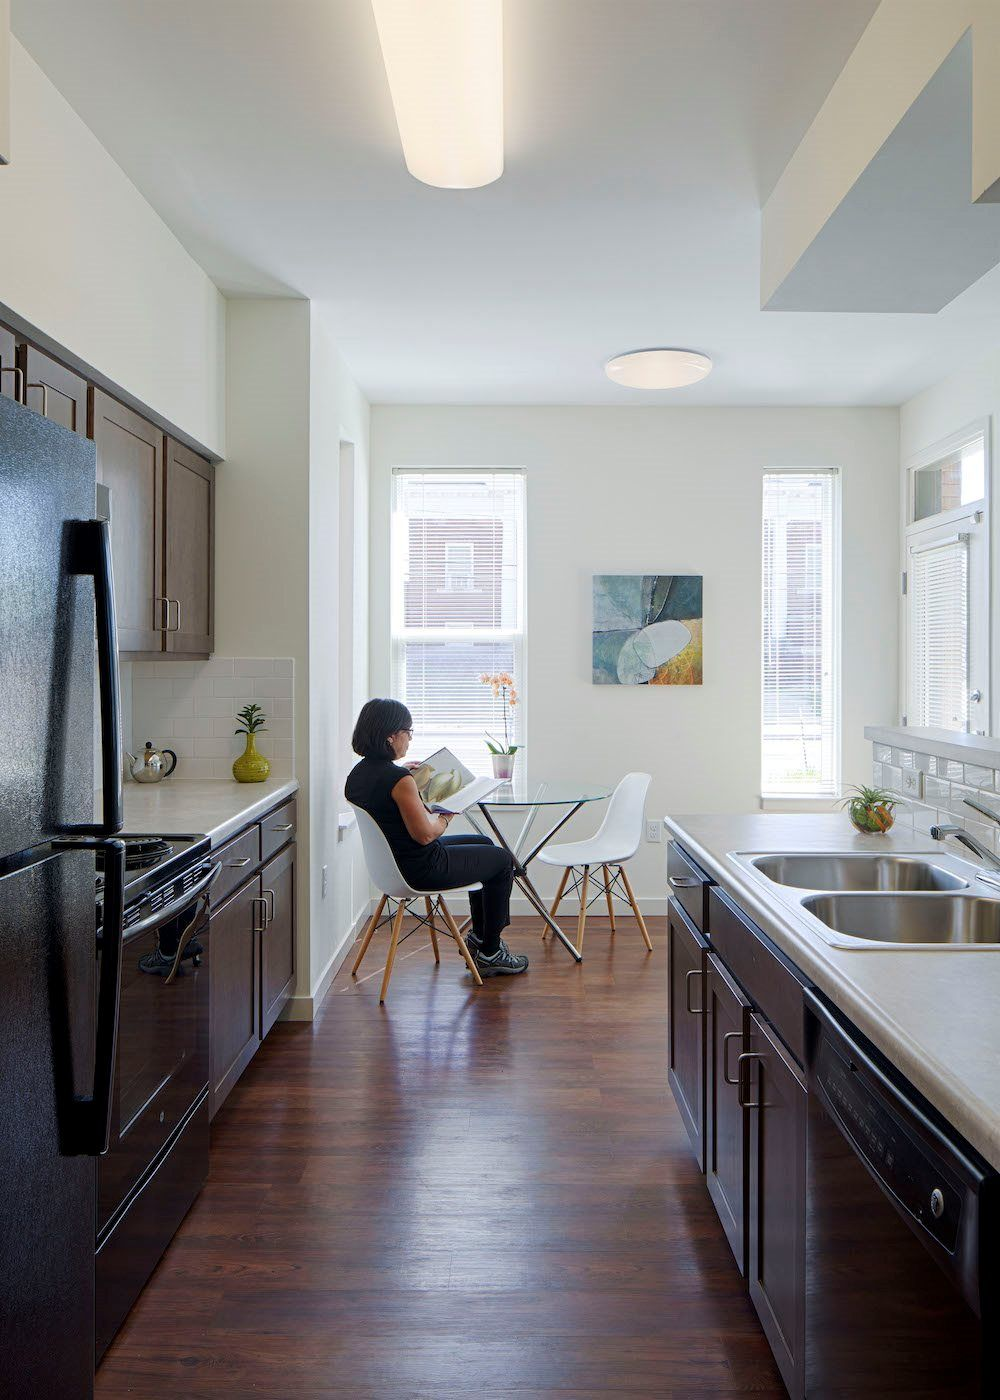 Our kitchens include a dishwasher, garbage disposal, refrigerator ...